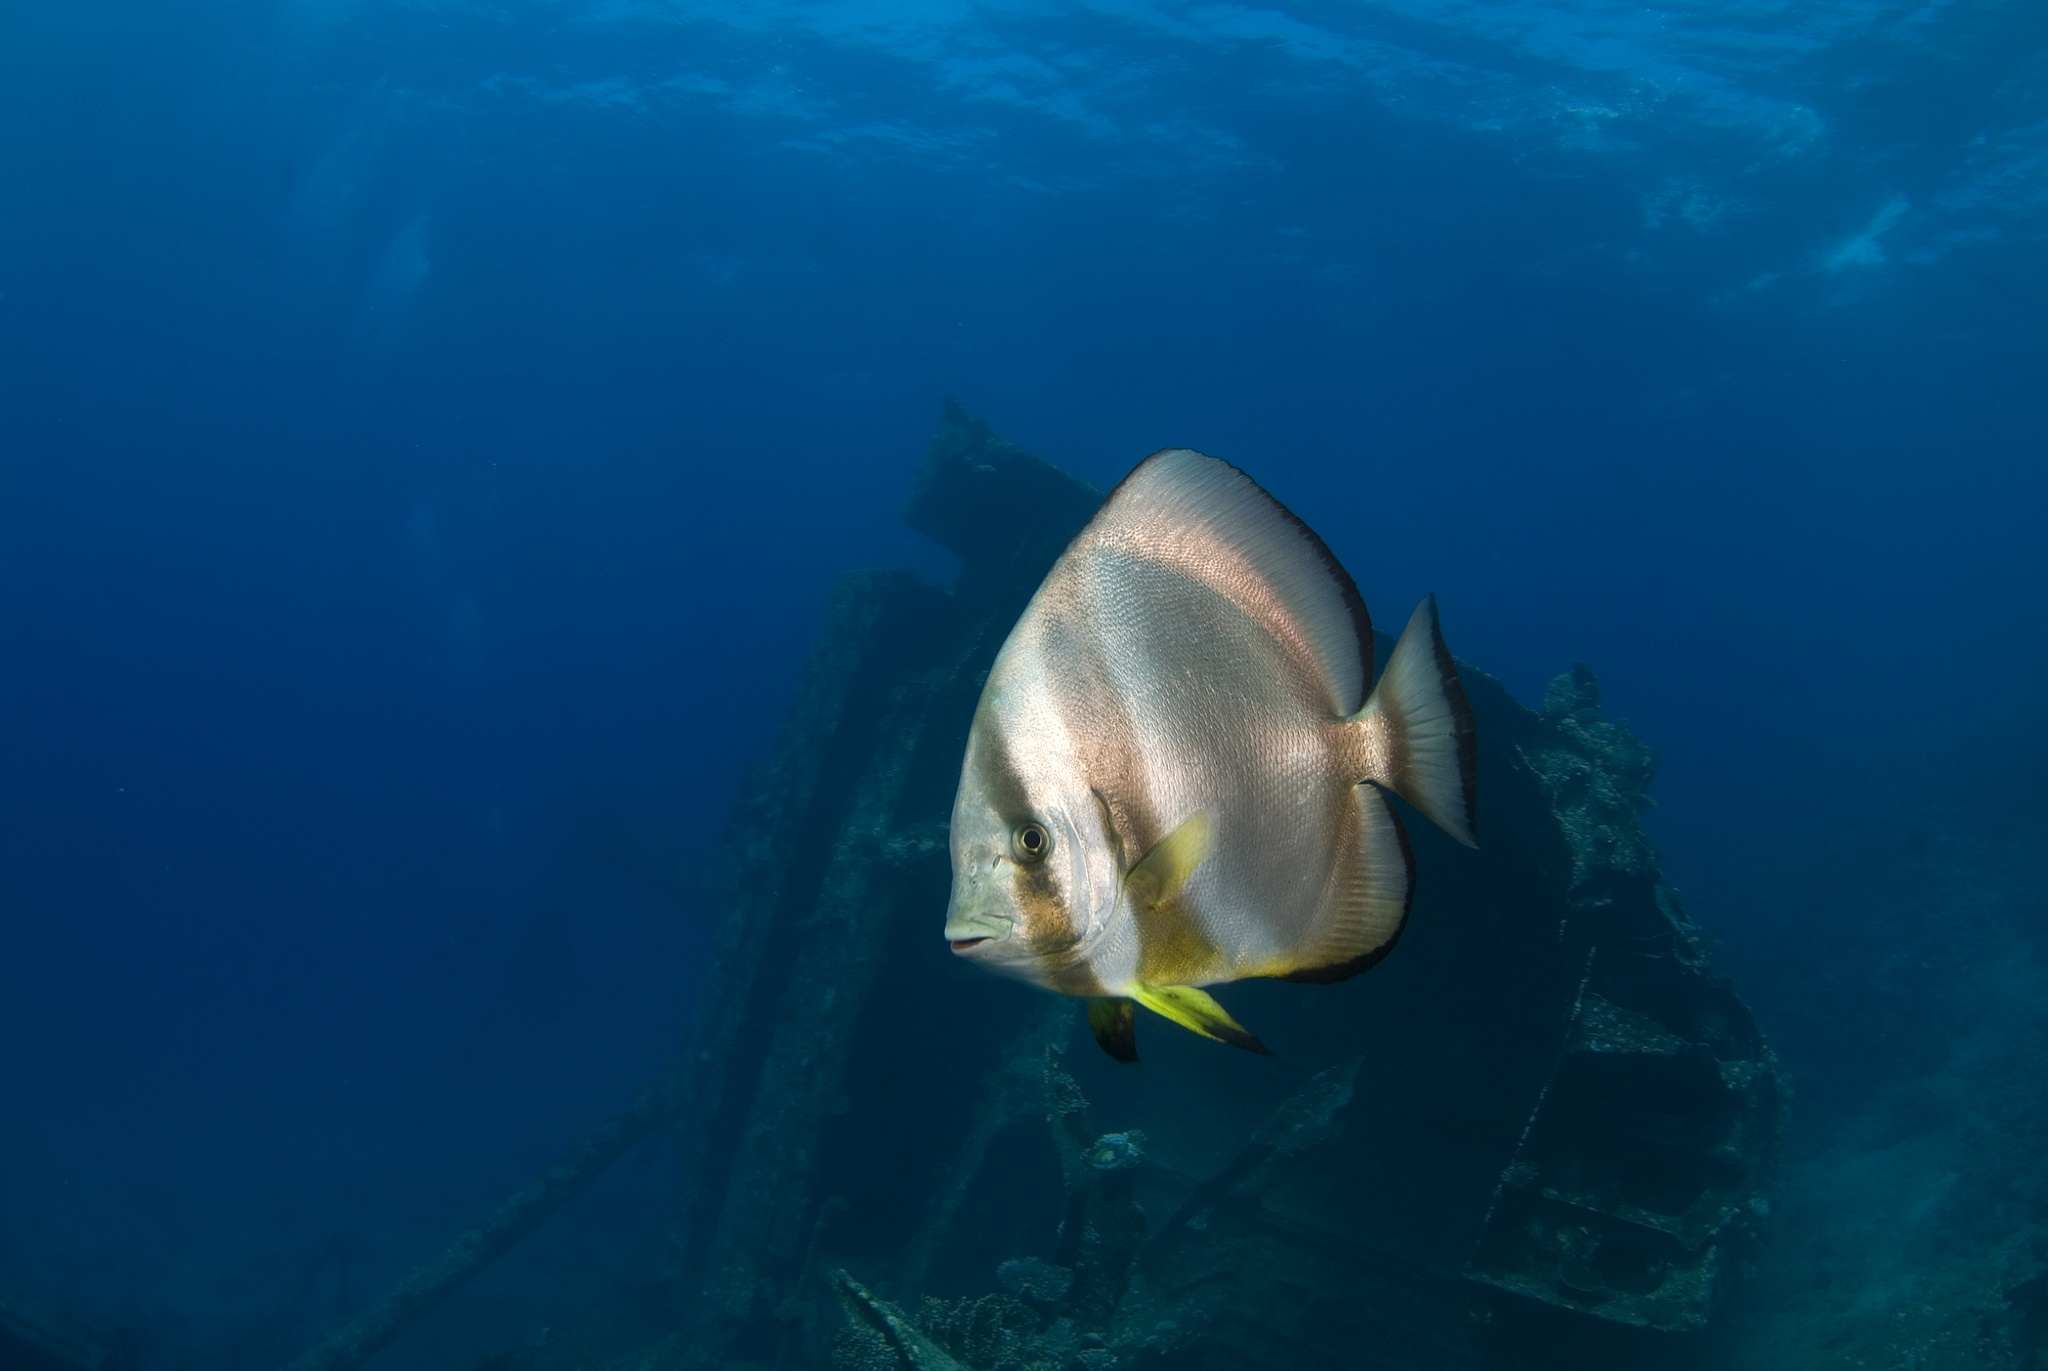 Batfish and The Gianis D by Ilan Ben Tov